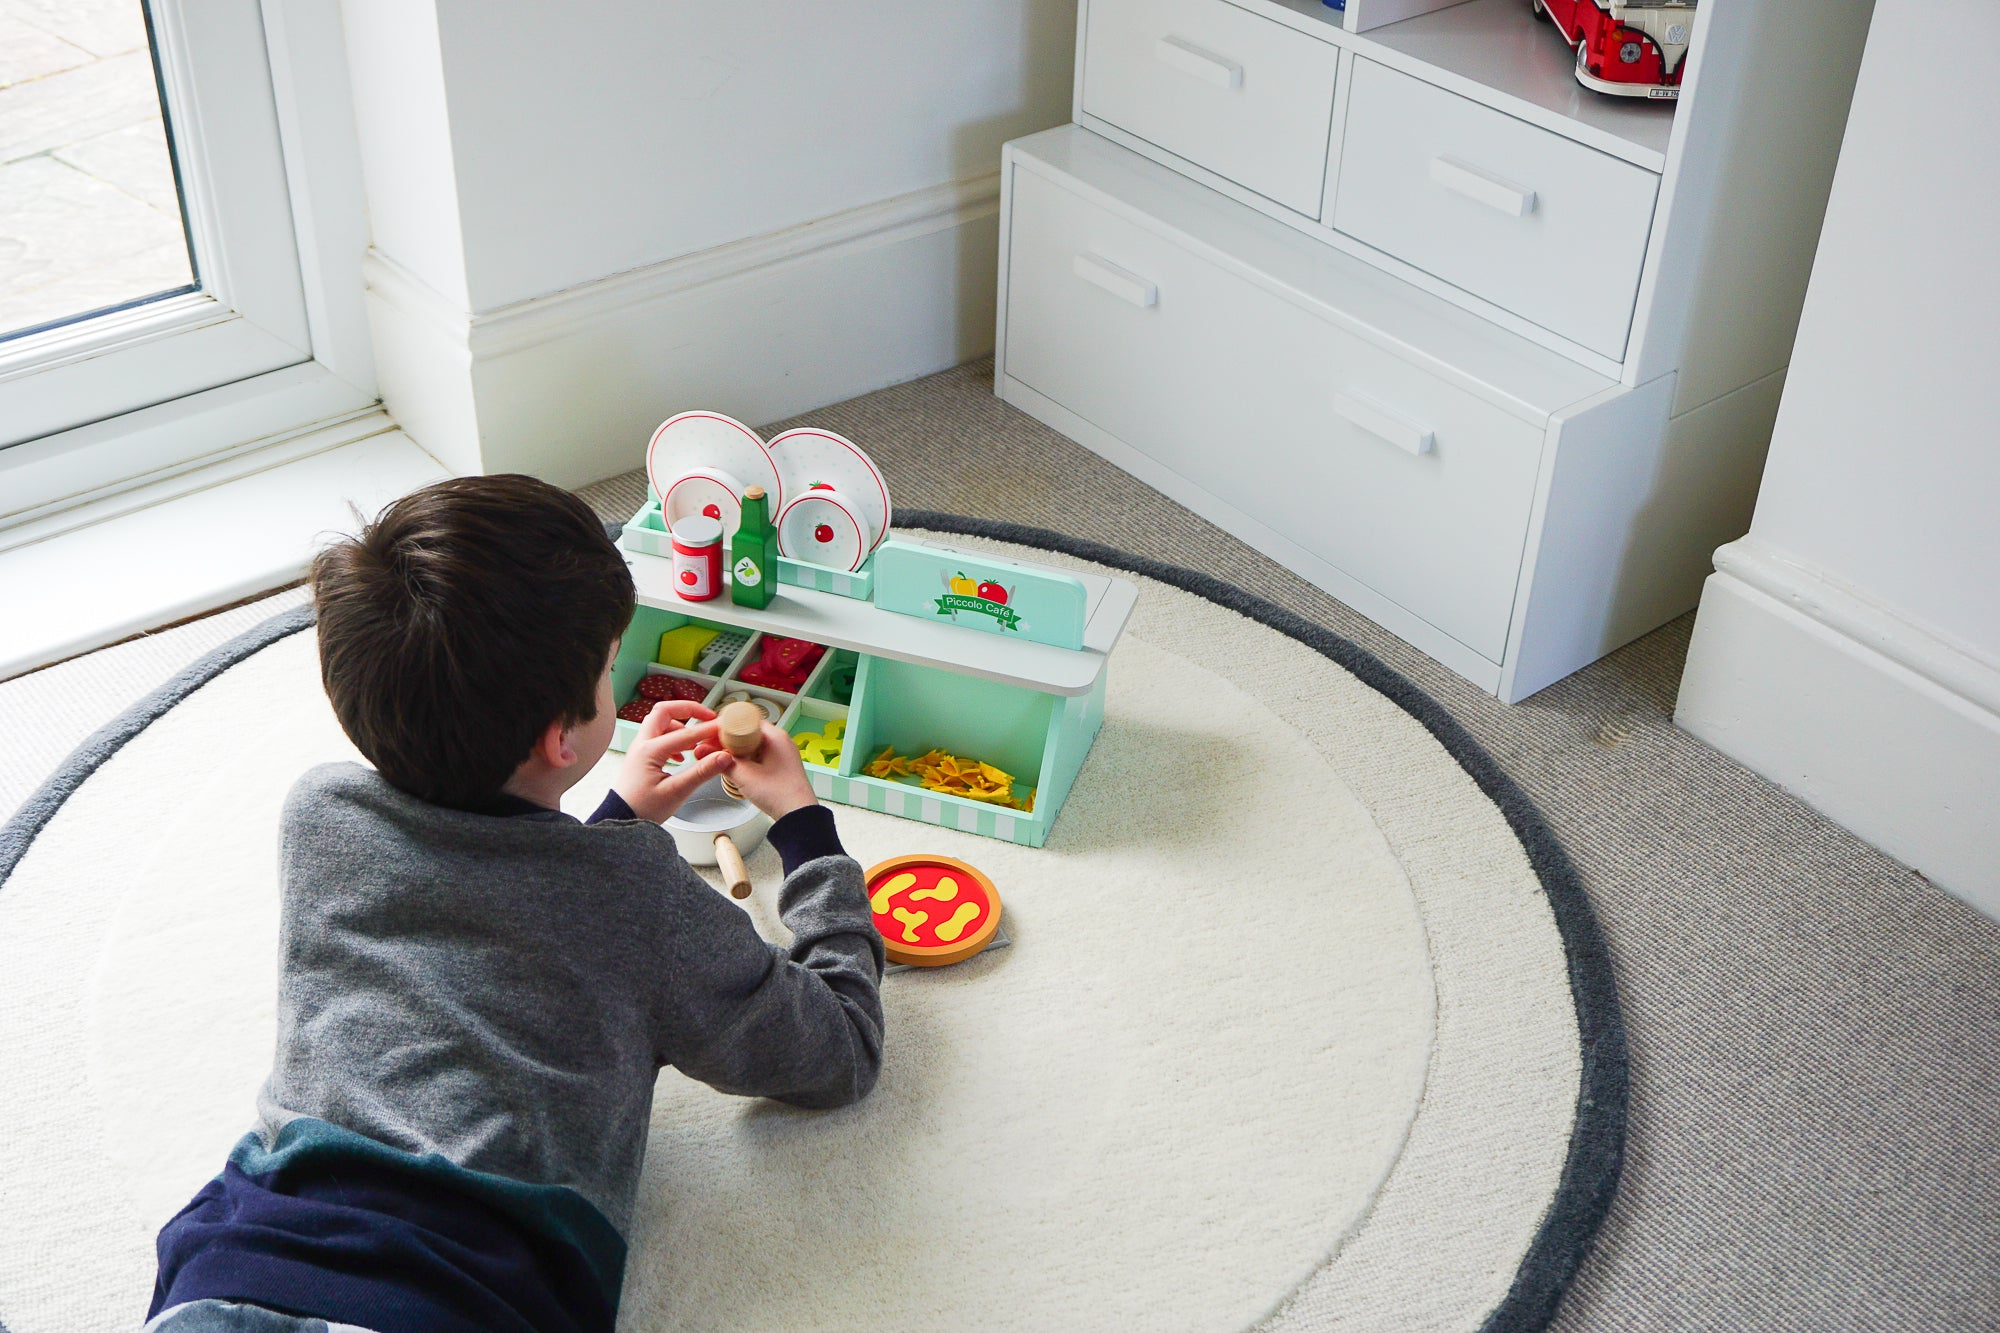 Turn your living room into a shared space with versatile toy storage